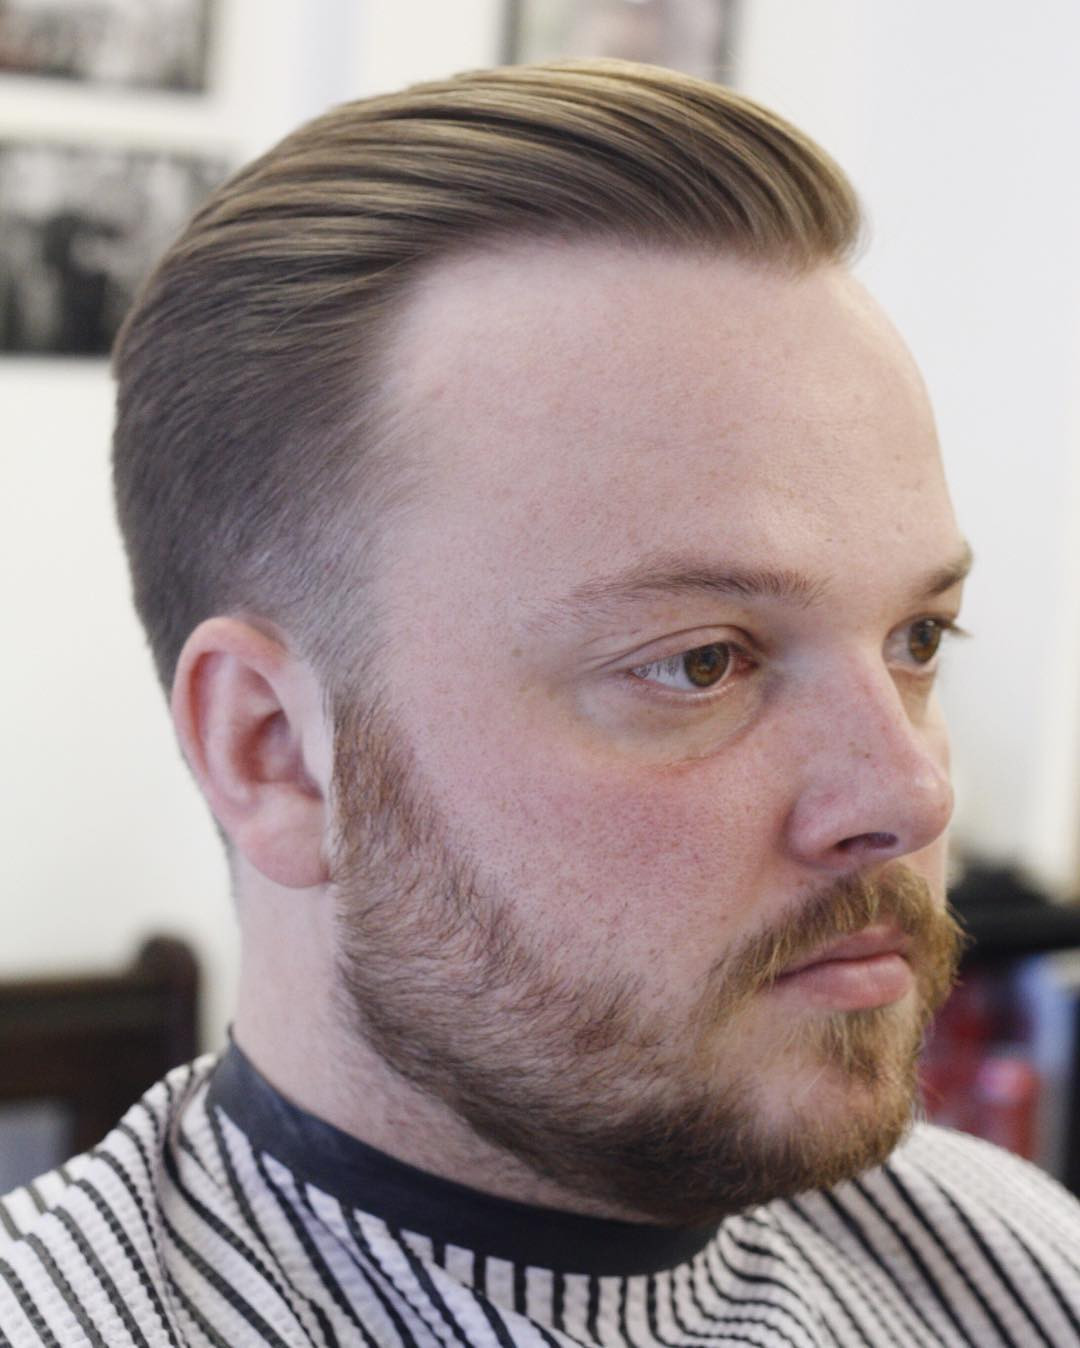 Best ideas about Mens Hairstyles For Receding Hairlines . Save or Pin Receding Hairline Hairstyles Now.